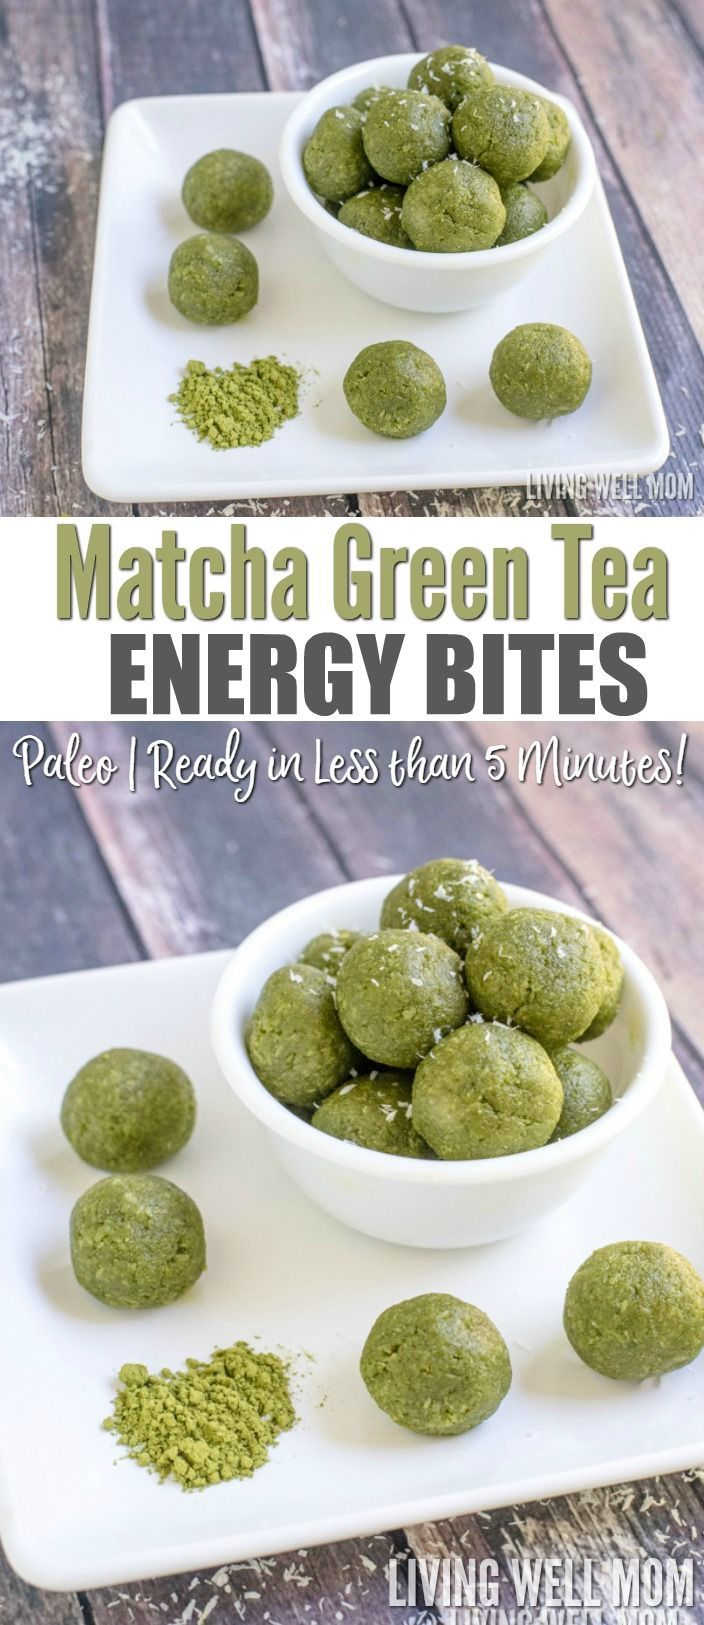 A delicious blend of green tea and coconut, these Matcha Green Tea Energy Bites are a perfect way to perk you up anytime of the day! Plus, this recipe requires less than 5 minutes to make! It's also refined sugar-free, dairy-free, gluten-free and Paleo friendly.